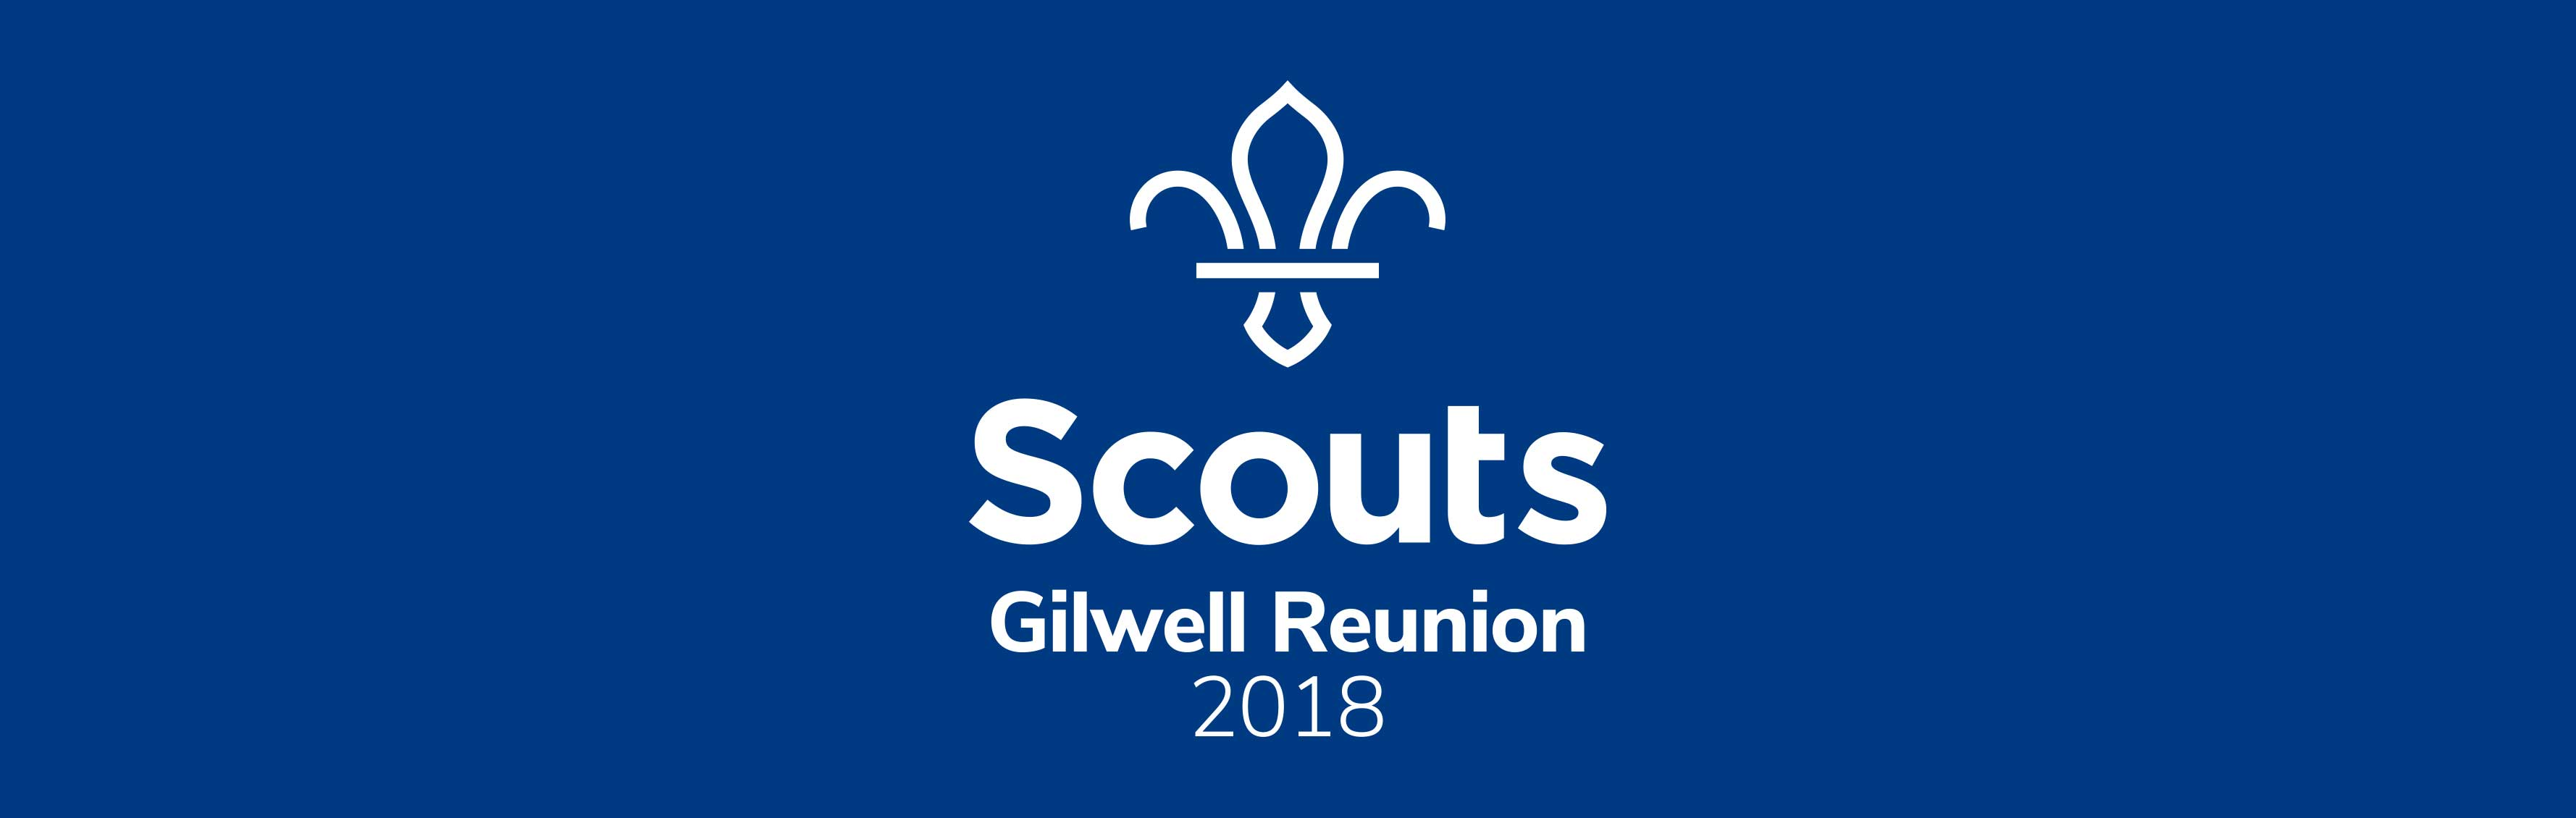 Gilwell Reunion 2018 is open.